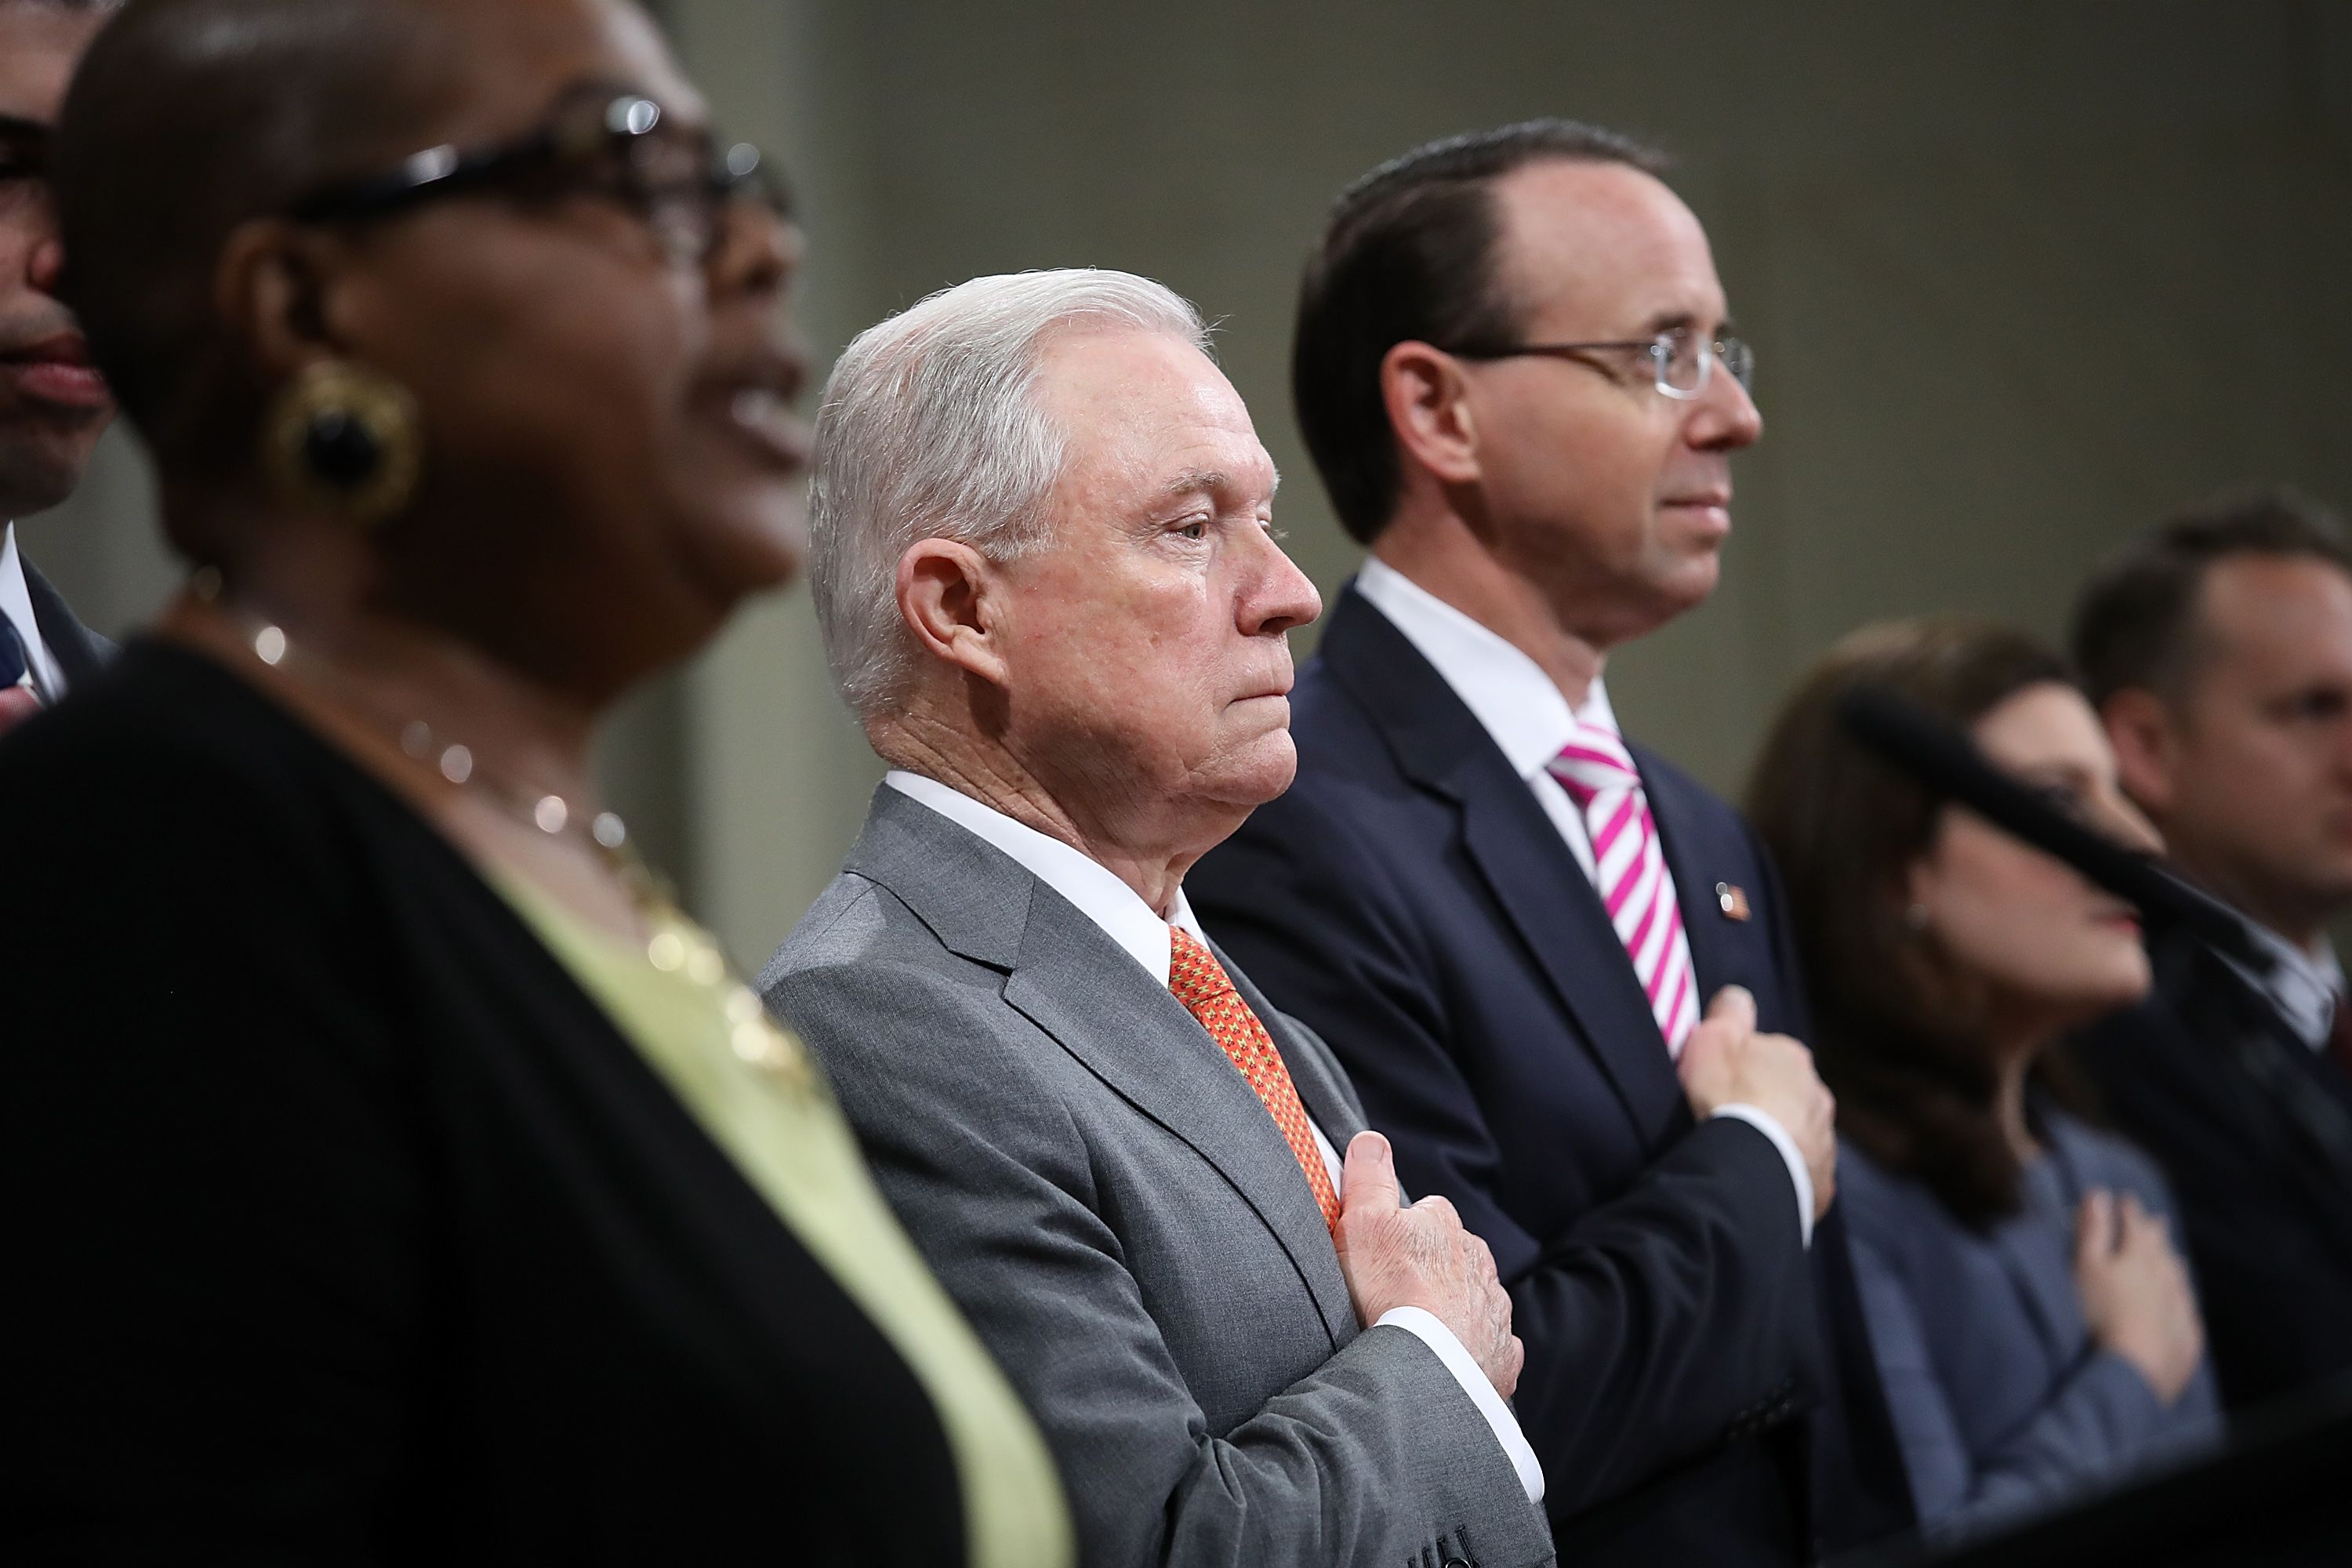 Sessions: US culture 'less hospitable to people of faith'